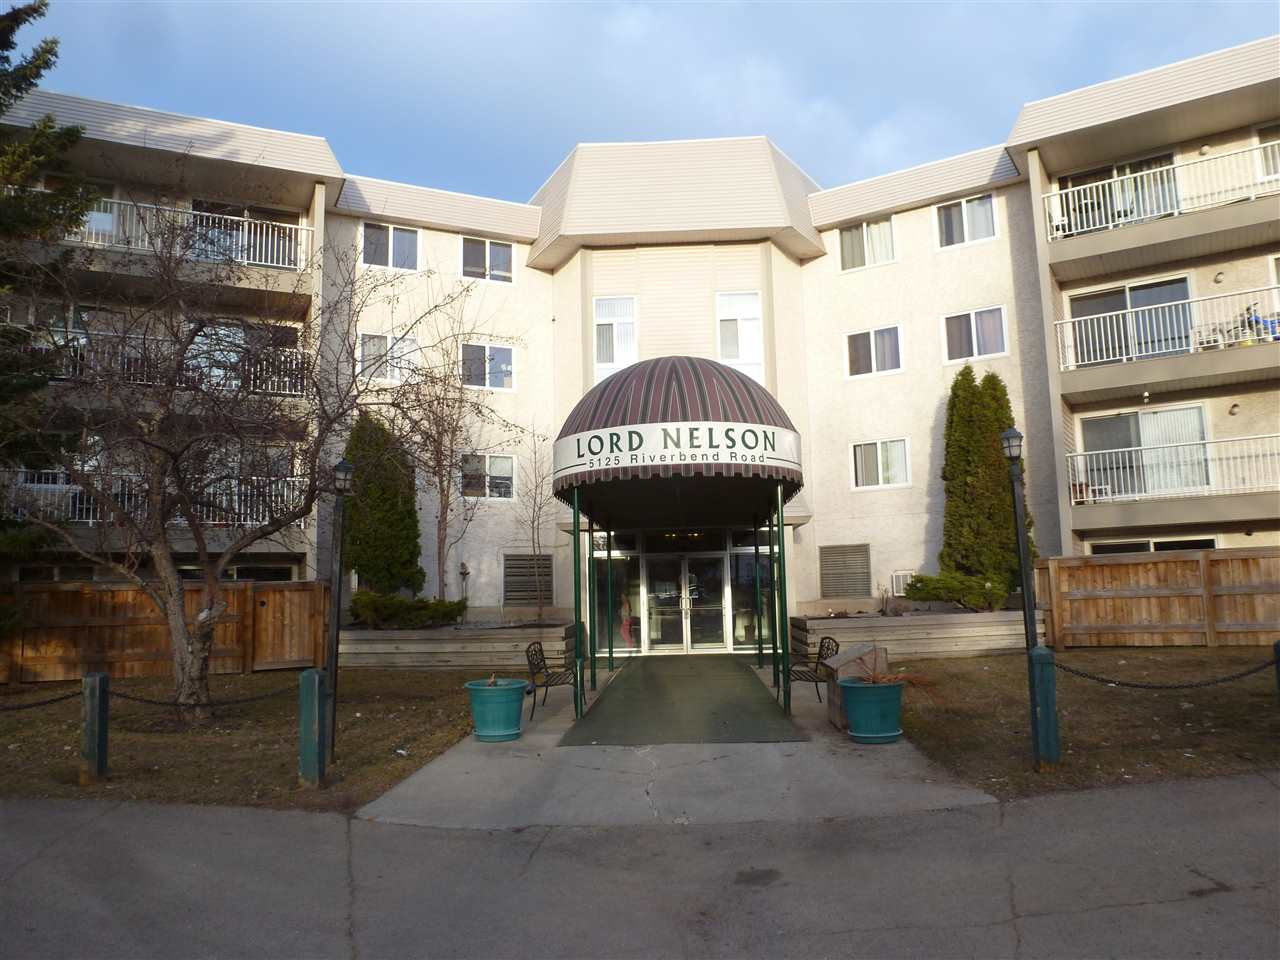 **Just Listed** Very spacious 3-Bedroom/2 Bathroom Condo(1150 Sq Ft) on the 3rd Floor at the Lord Nelson in Riverbend/Brandner Gardens. Features newer laminate flooring, windows and  upgraded blinds, galley kitchen, Balcony. Massive and marvellous black wall unit in Living Room will stay. Comes with 2 Outside Parking Stalls. The Lord Nelson also features an Indoor Swimming Pool and HotTub off the main floor. Guest Suites and Visitor Parking is also available. Great location too - close to schools ande with quick access to the Whitemud Freeway.